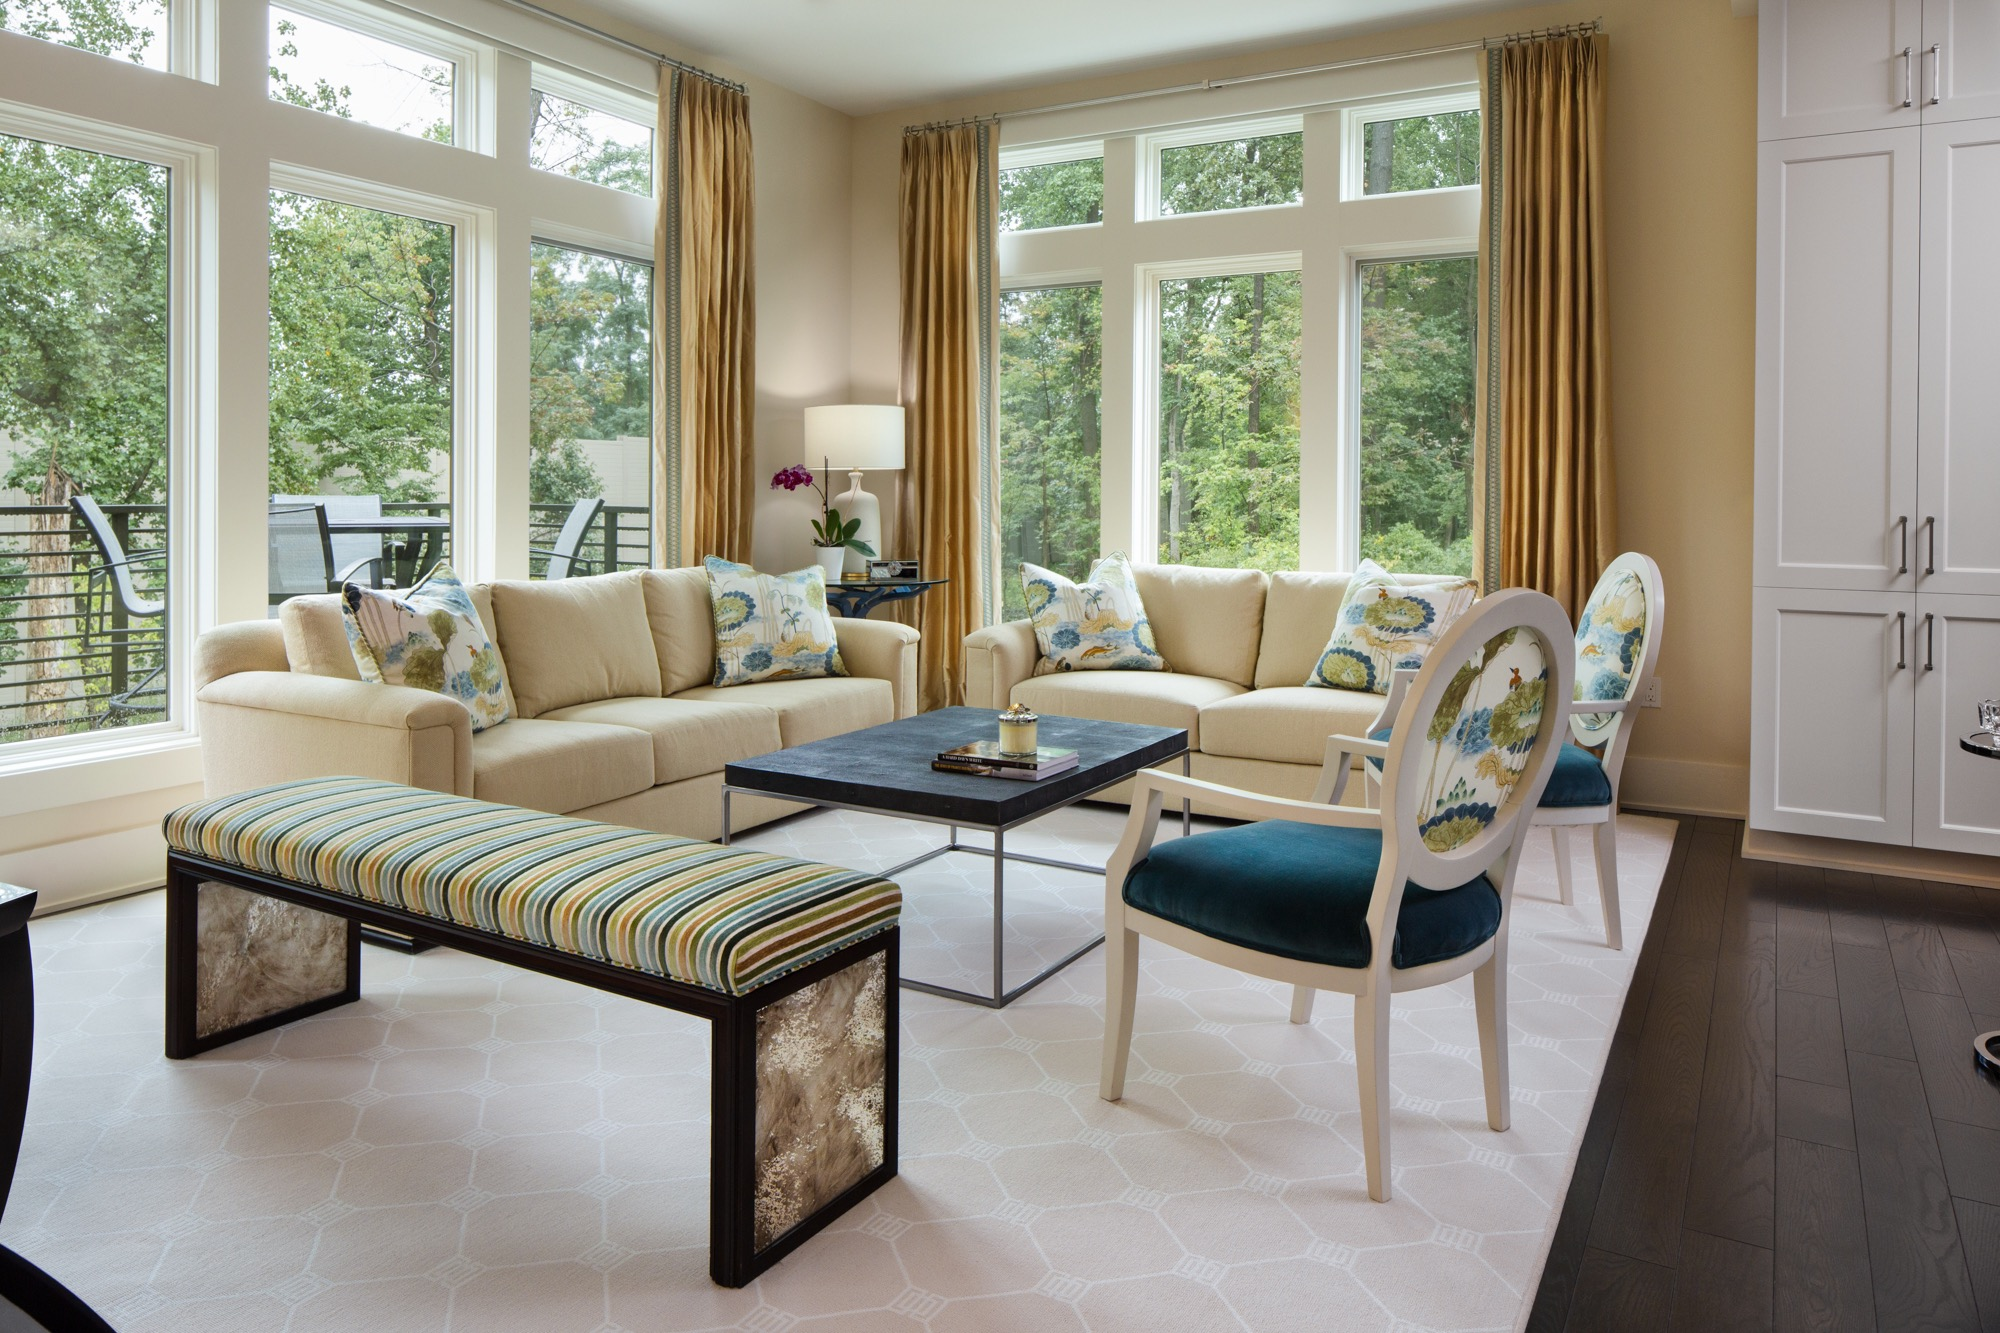 Samantha-Friedman-Interior-Design-Maryland